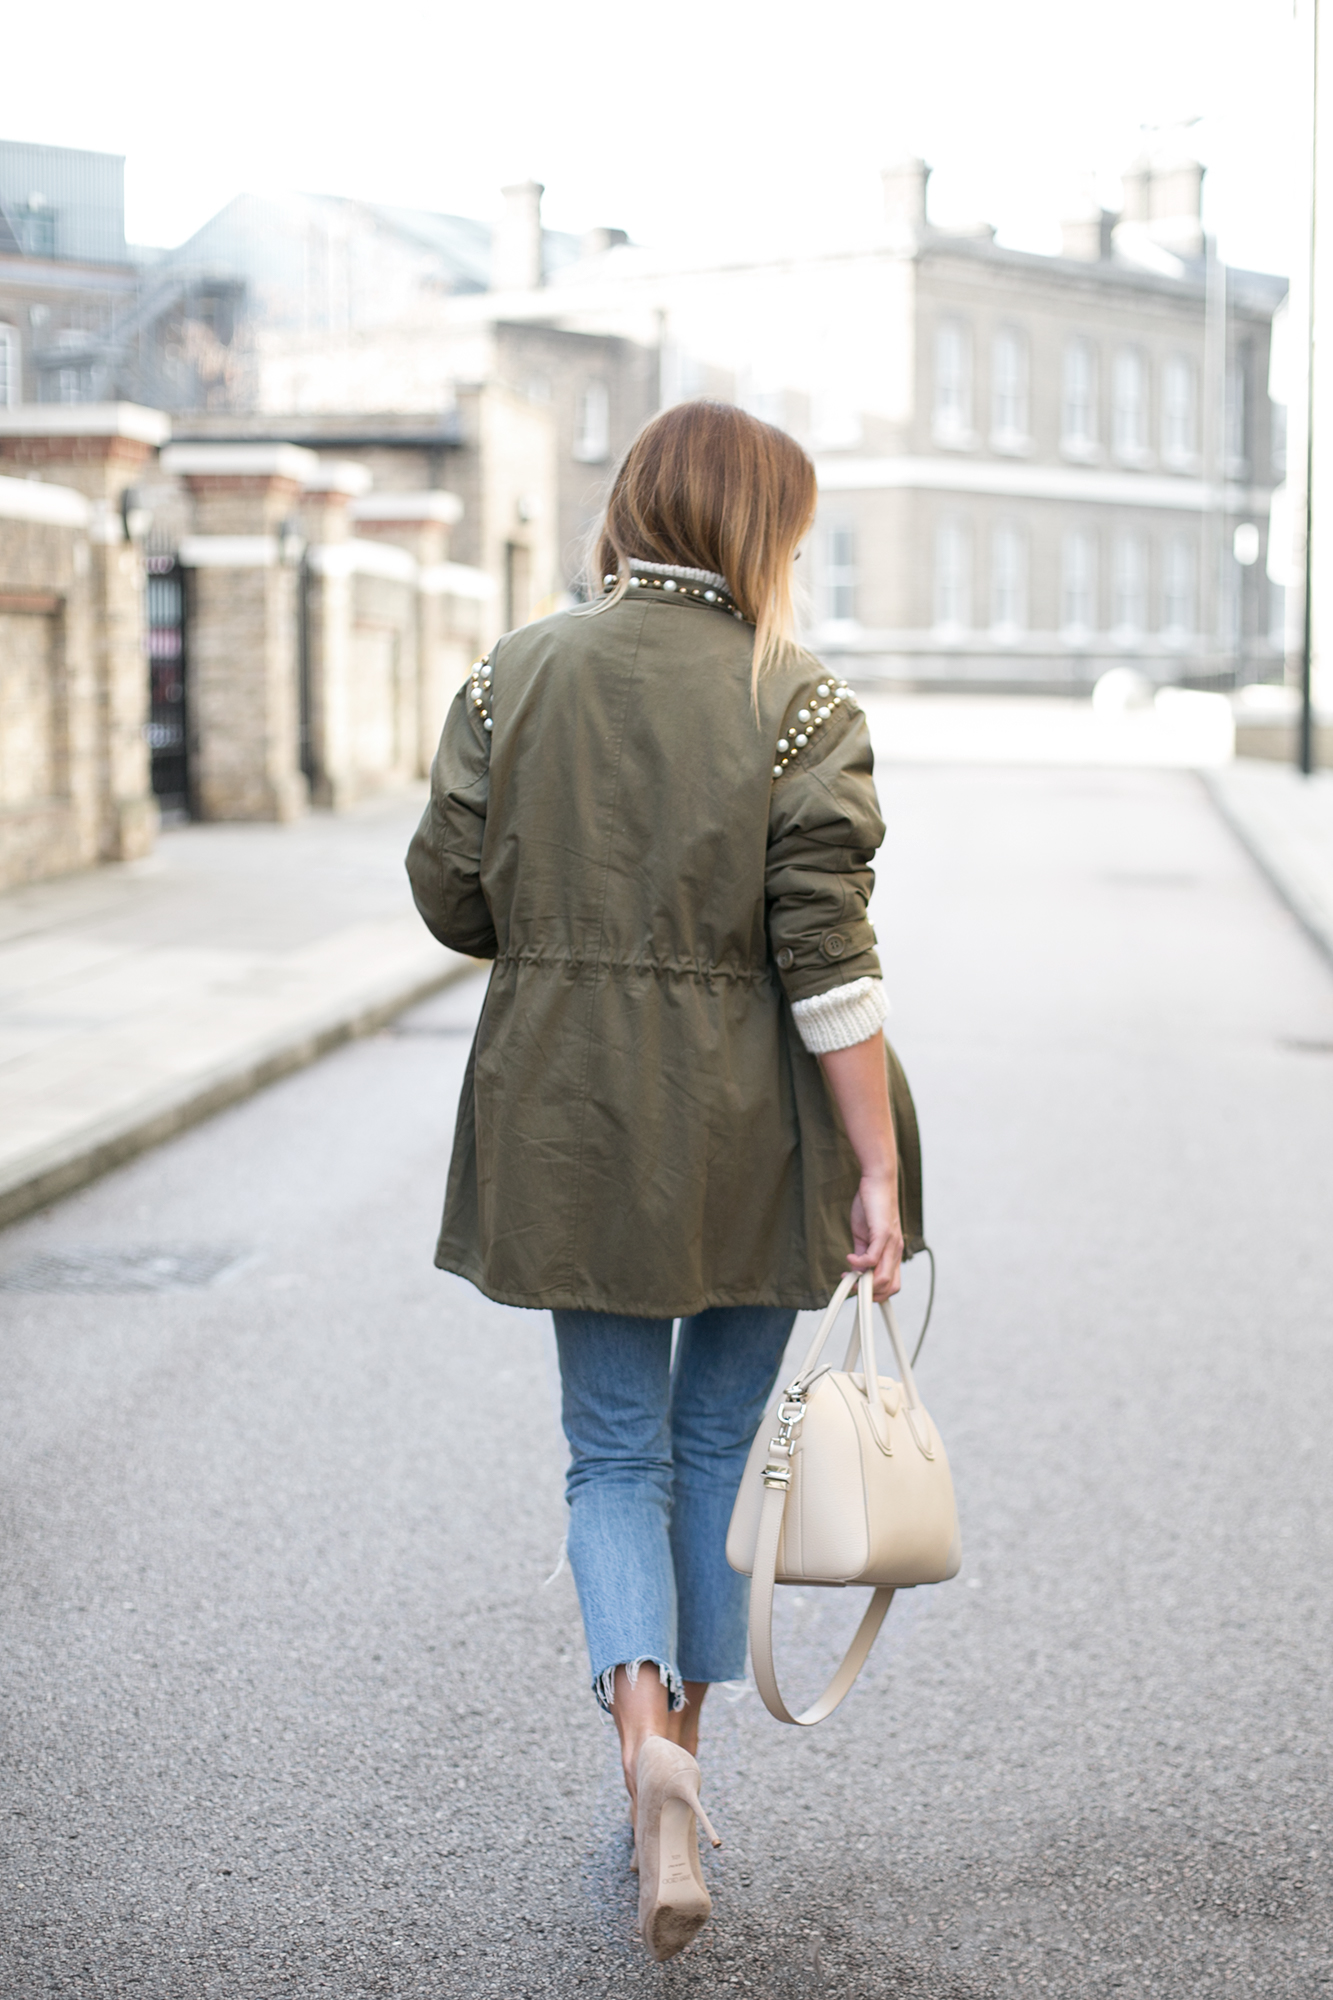 khaki embellished jacket, ripped Levis 501 jeans, cream Givenchy antigona bag small, beige suede Jimmy Choo Roma pumps, chic winter outfit